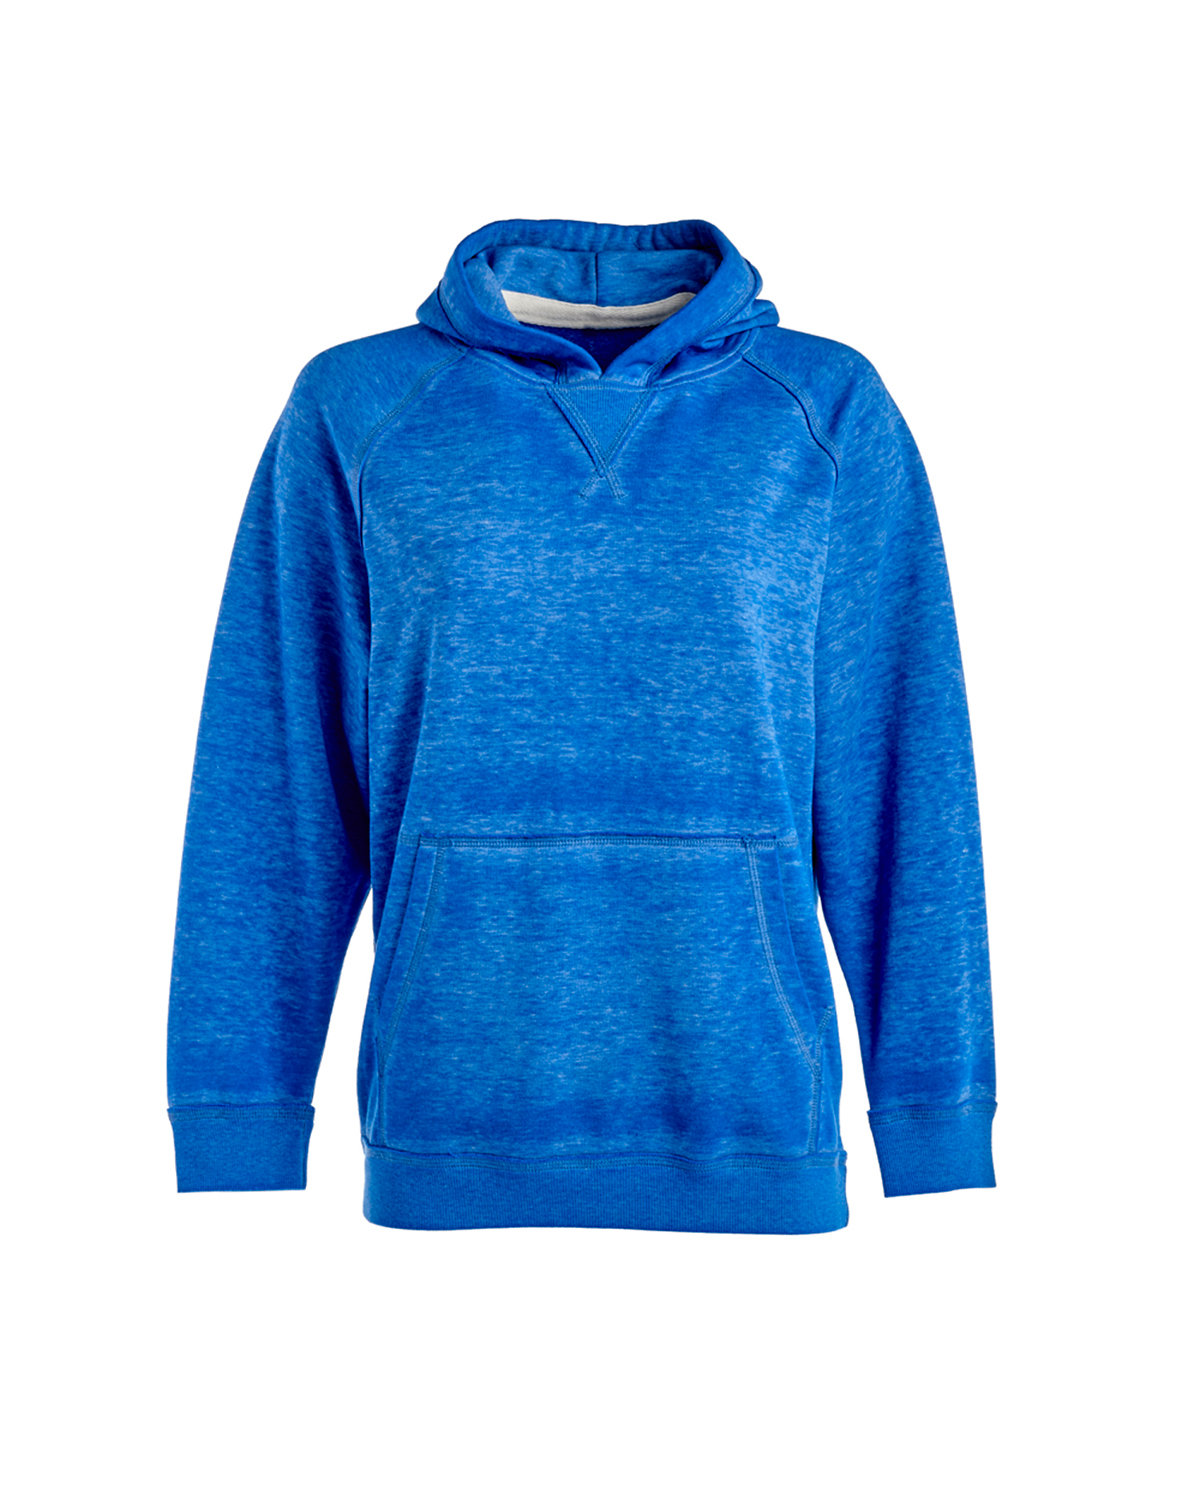 J America Youth Zen Pullover Hooded Sweatshirt TWISTED ROYAL